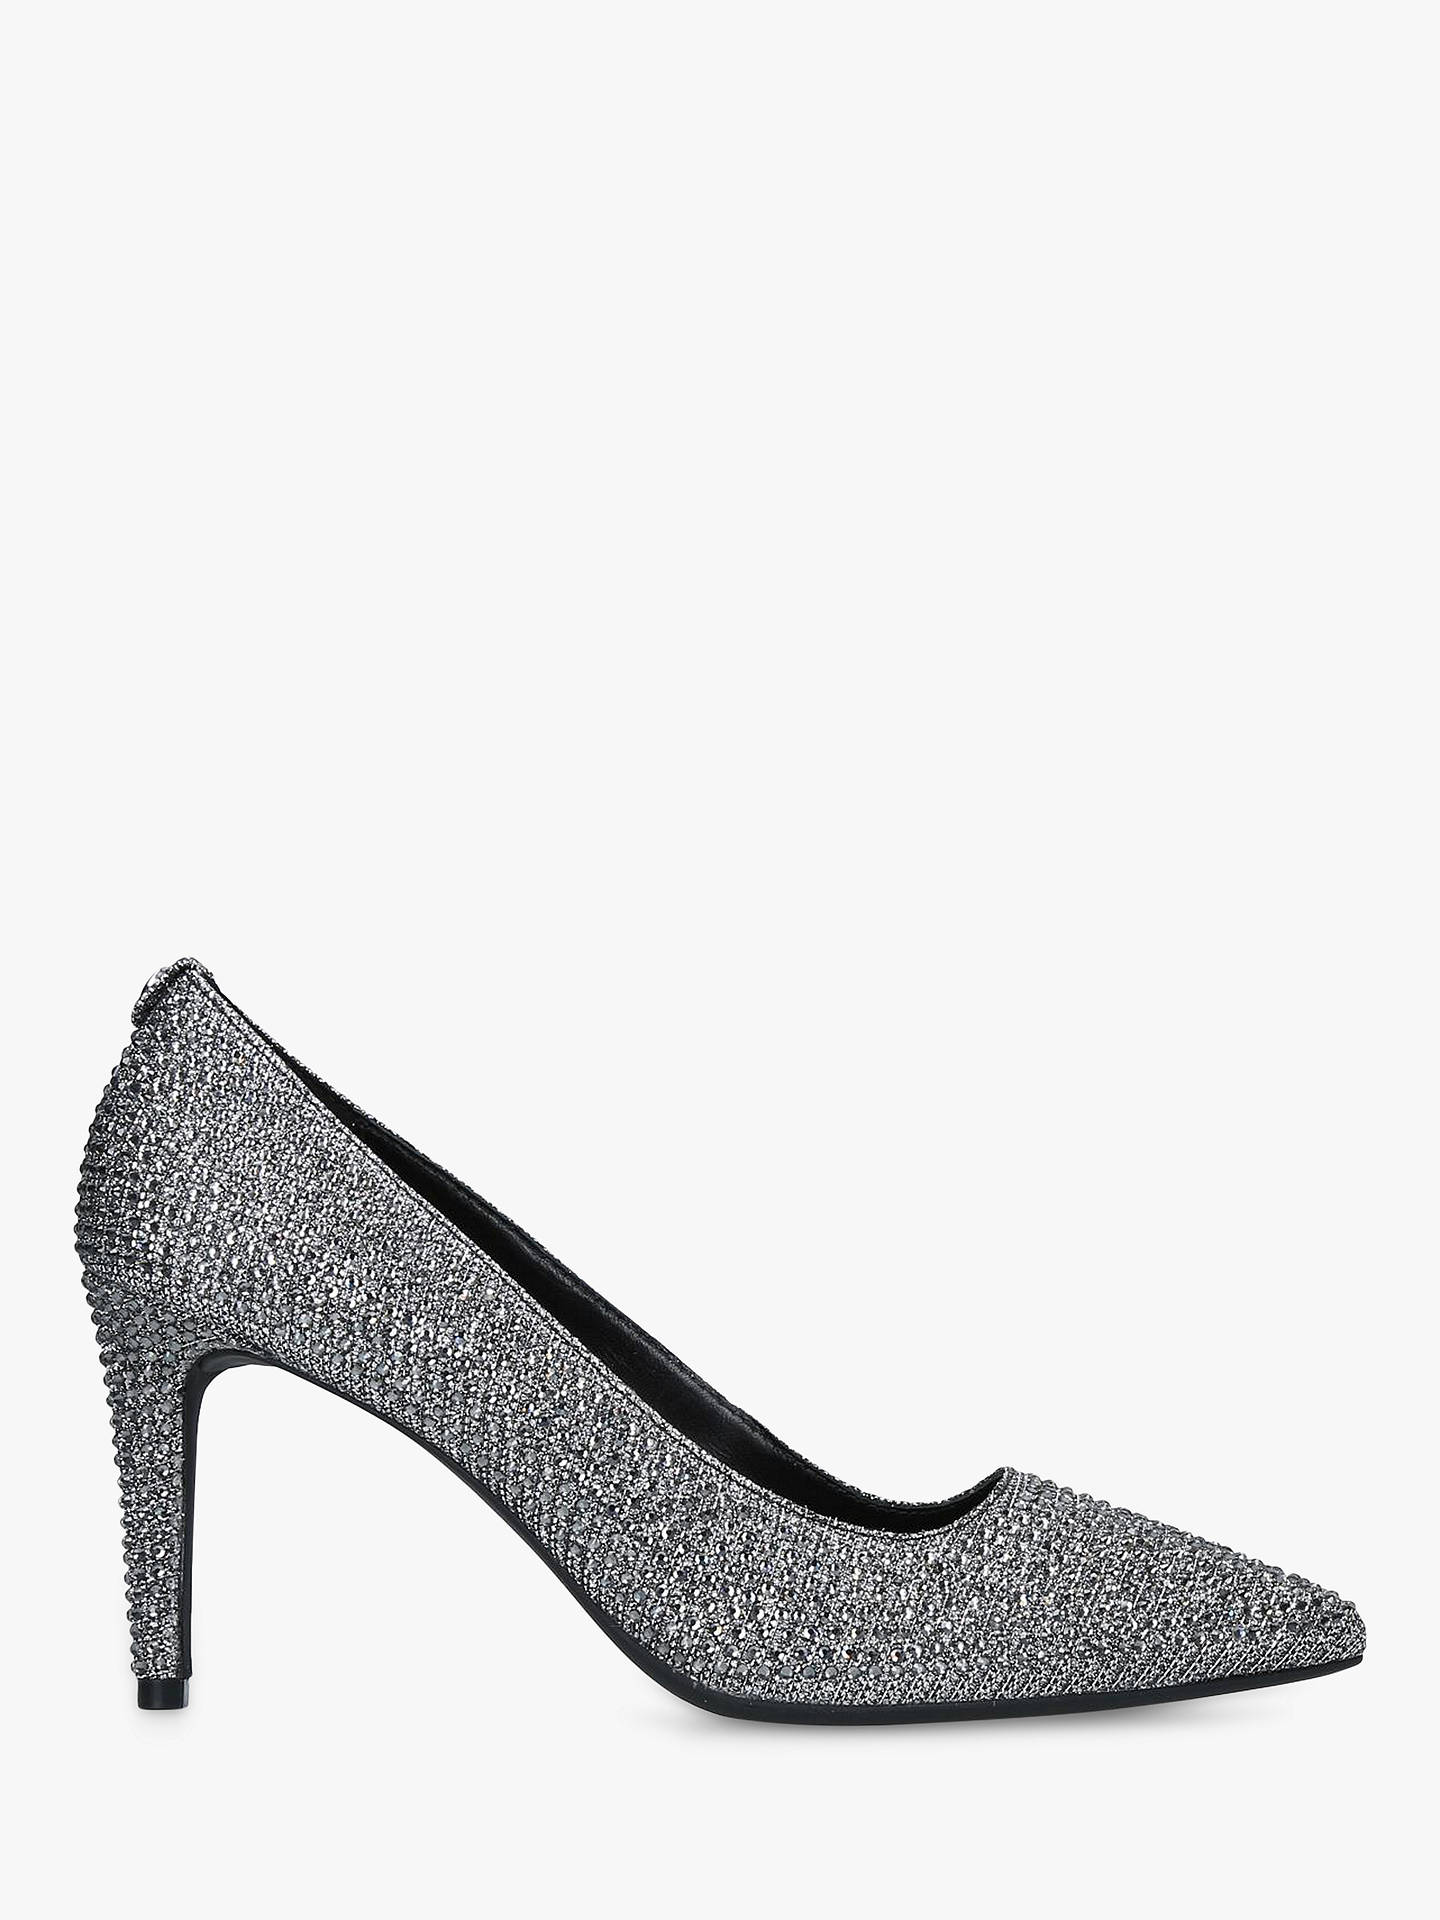 2e24c04281 Buy MICHAEL Michael Kors Dorothy Flex Pointed Court Shoes, Black Sparkle, 2  Online at ...